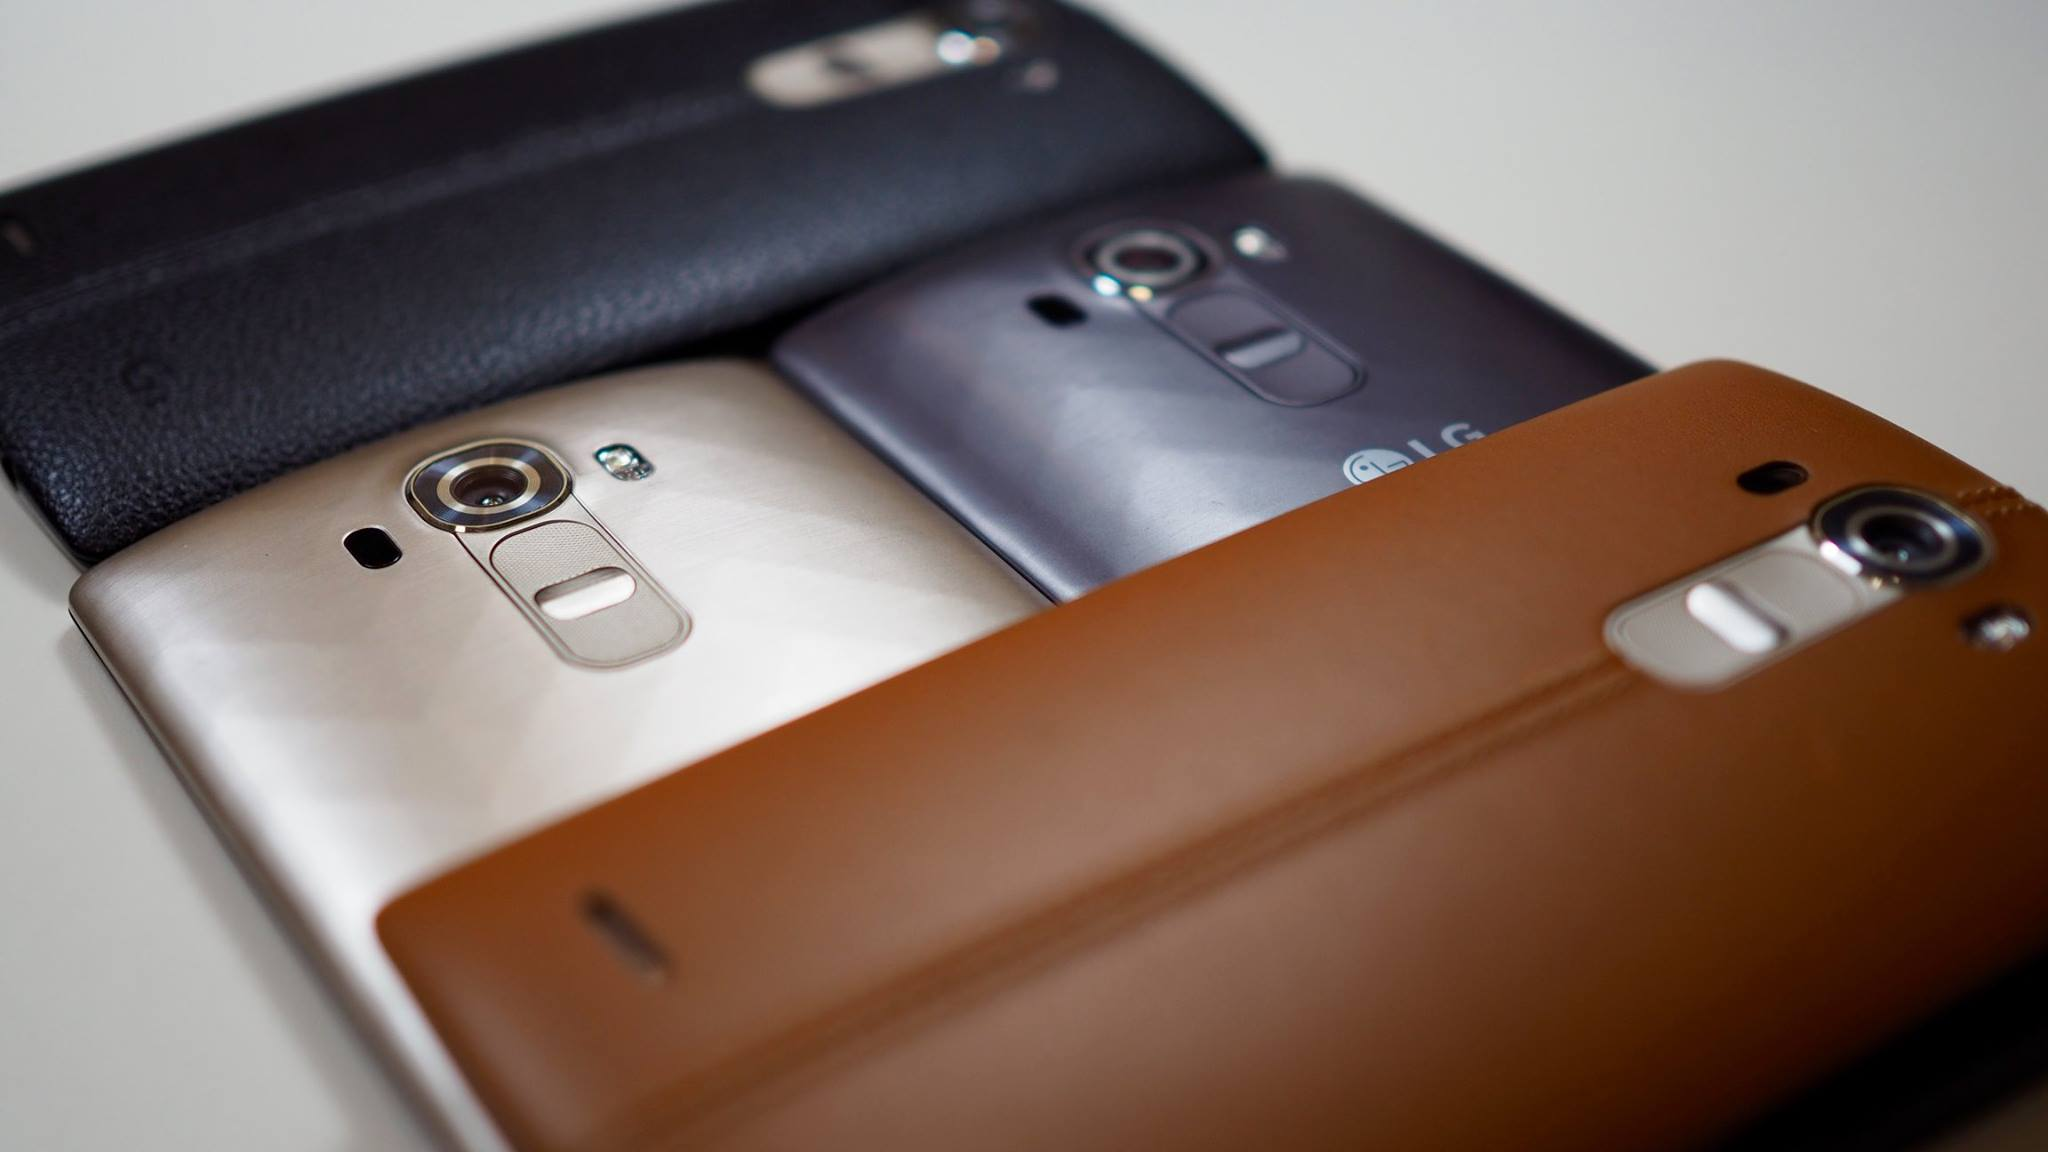 LG-G4-official-images (7)